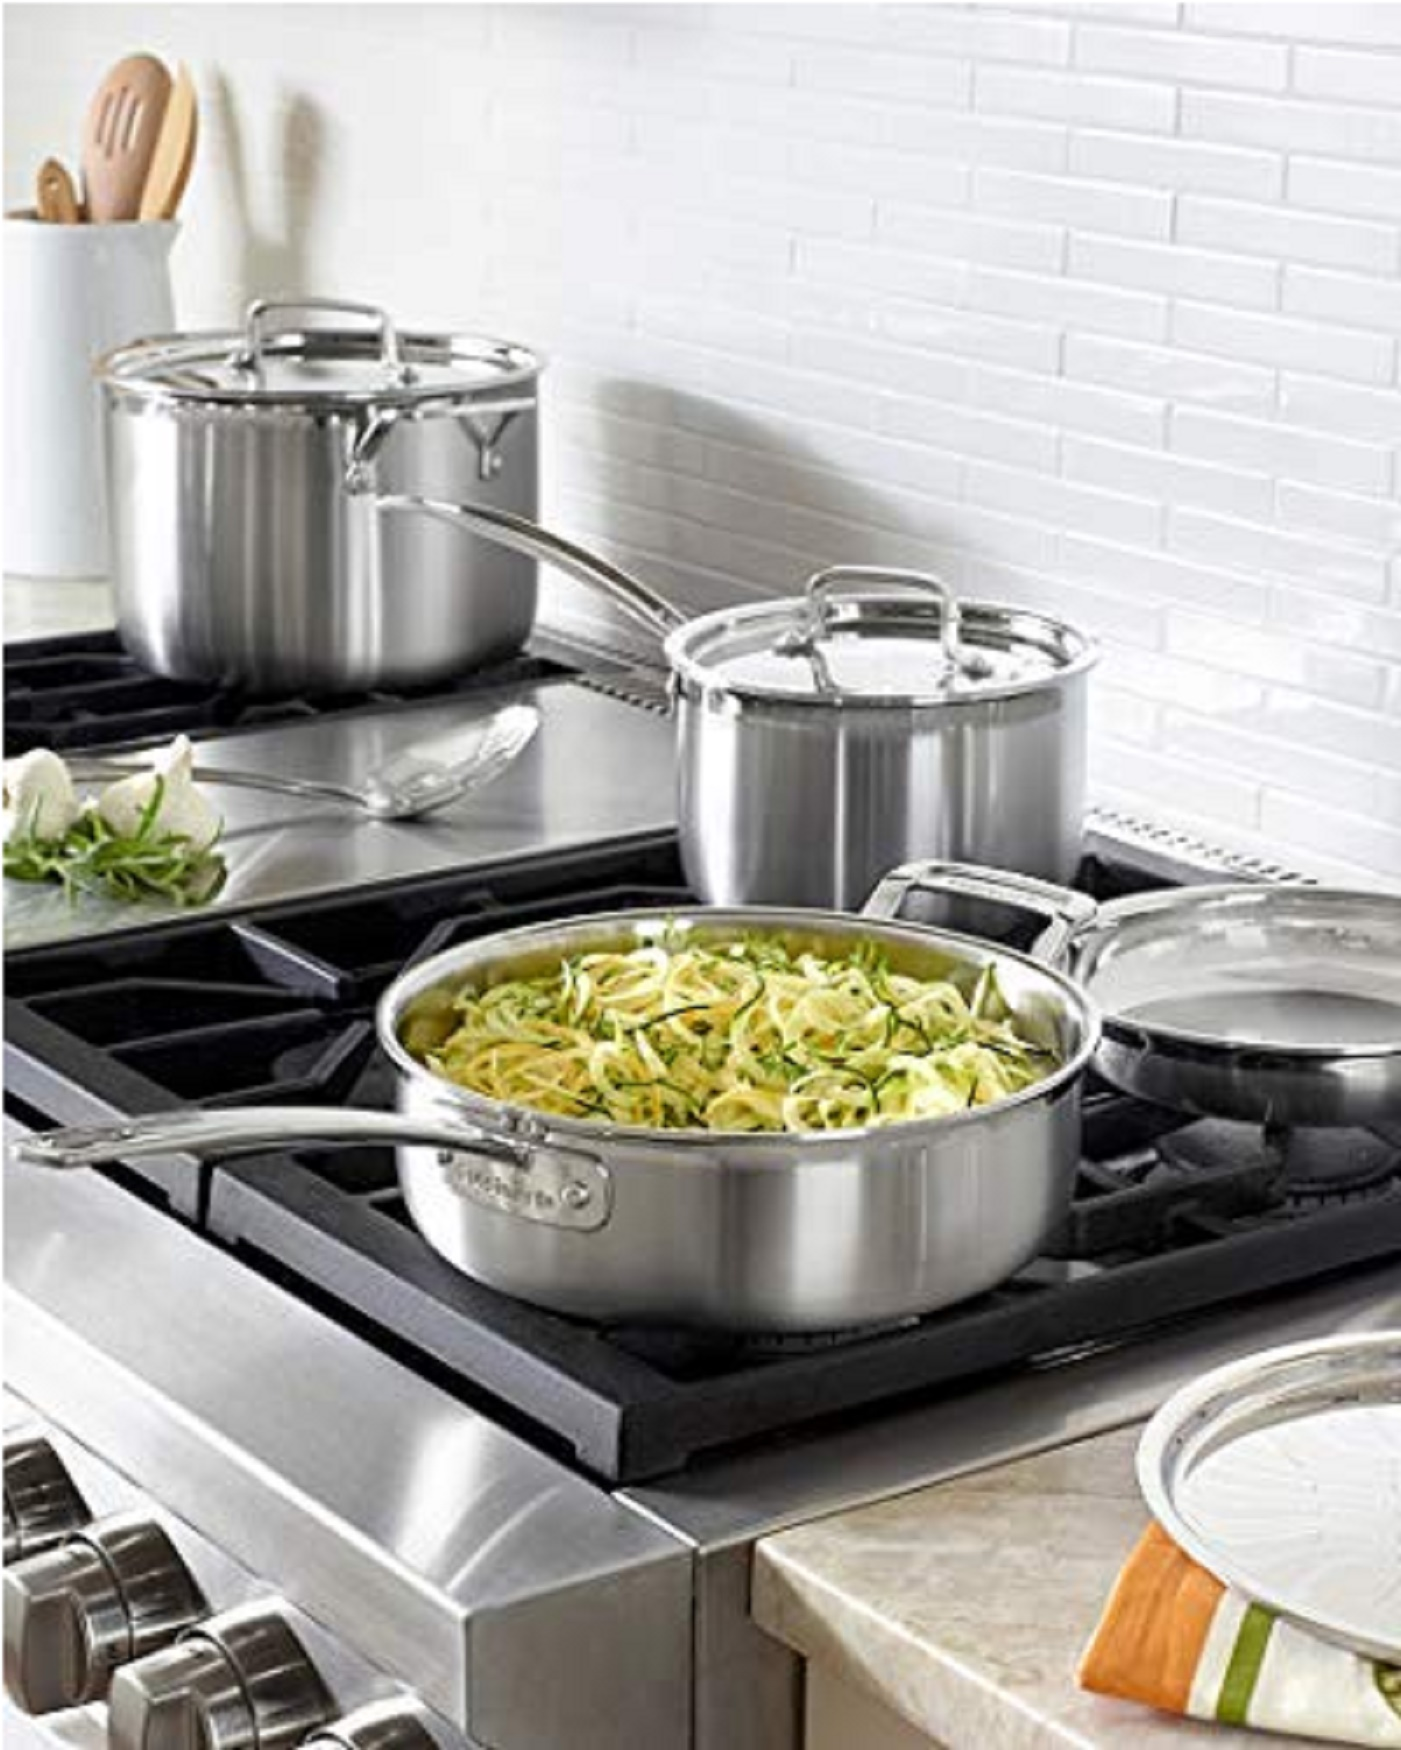 Cuisinart MCP-12N Multiclad Pro Stainless Steel 12-Piece Cookware Set-cuisinart multiclad pro vs all clad